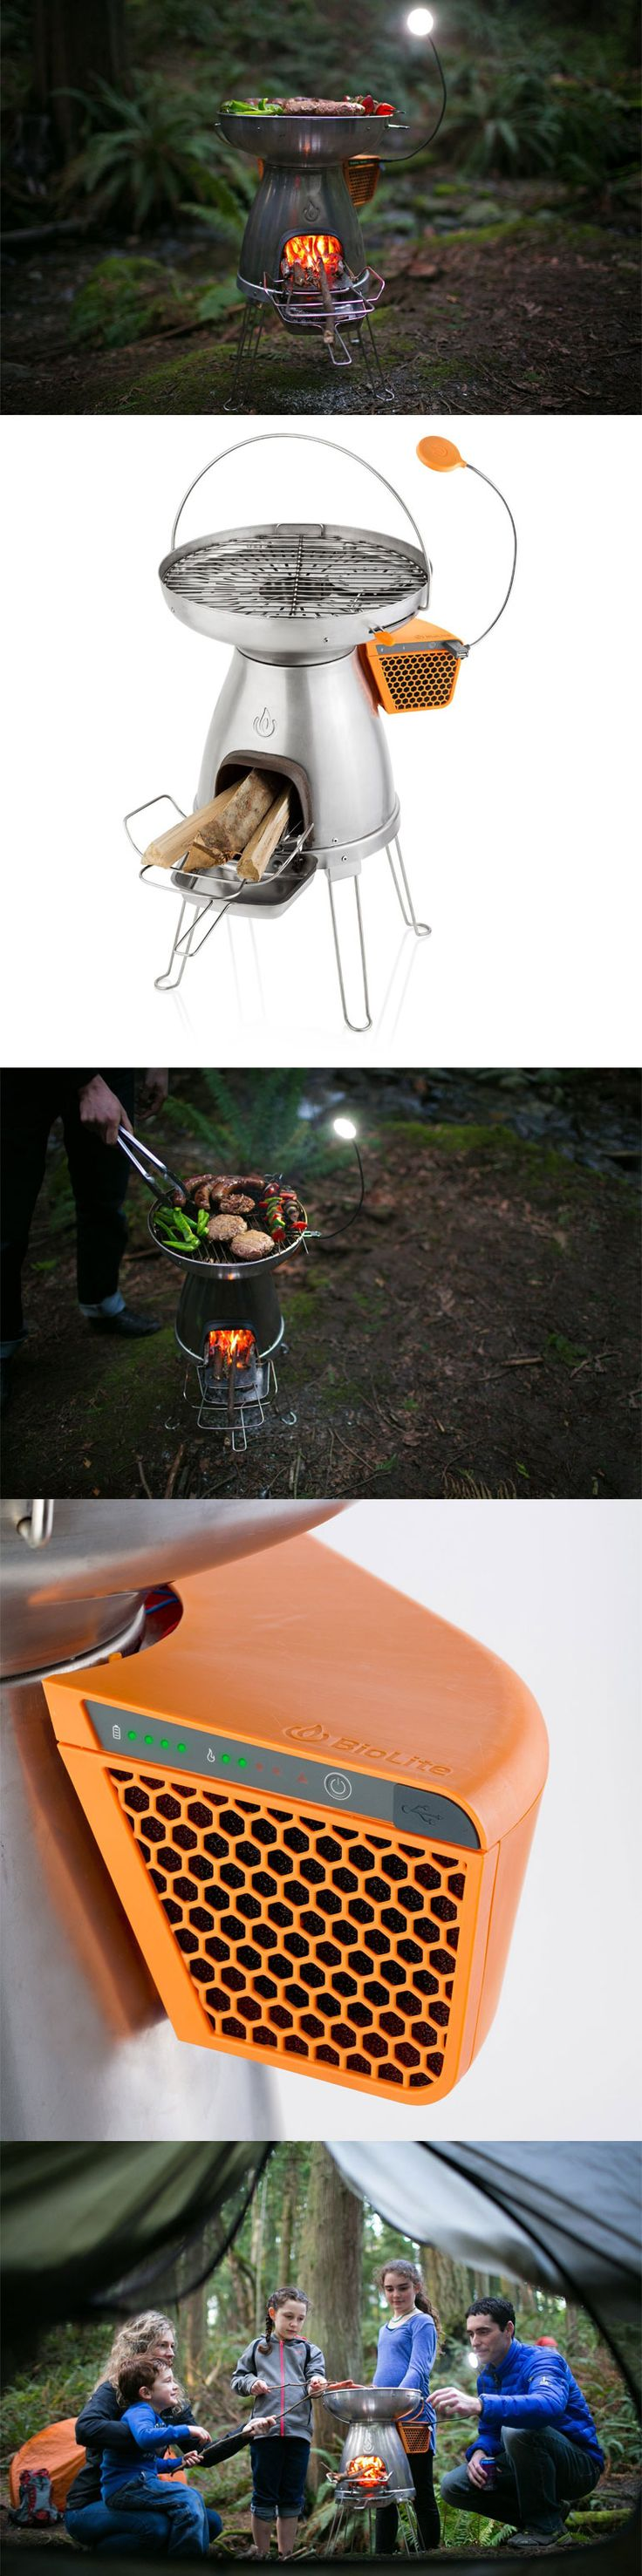 "BioLite – BaseCamp (Burn things to charge your phone!)::  The BioLite BaseCamp is an innovative, off grid energy solution that makes dinner at the same time!  Using small pieces of wood for fuel, you can prepare authentic, wood fired dishes and keep a charge on your USB devices at the same time.  This ""Basecamp"" by Biolite lights, cooks, heats and fires smarter than any campfire before it! www.gonnawannagetit.com"